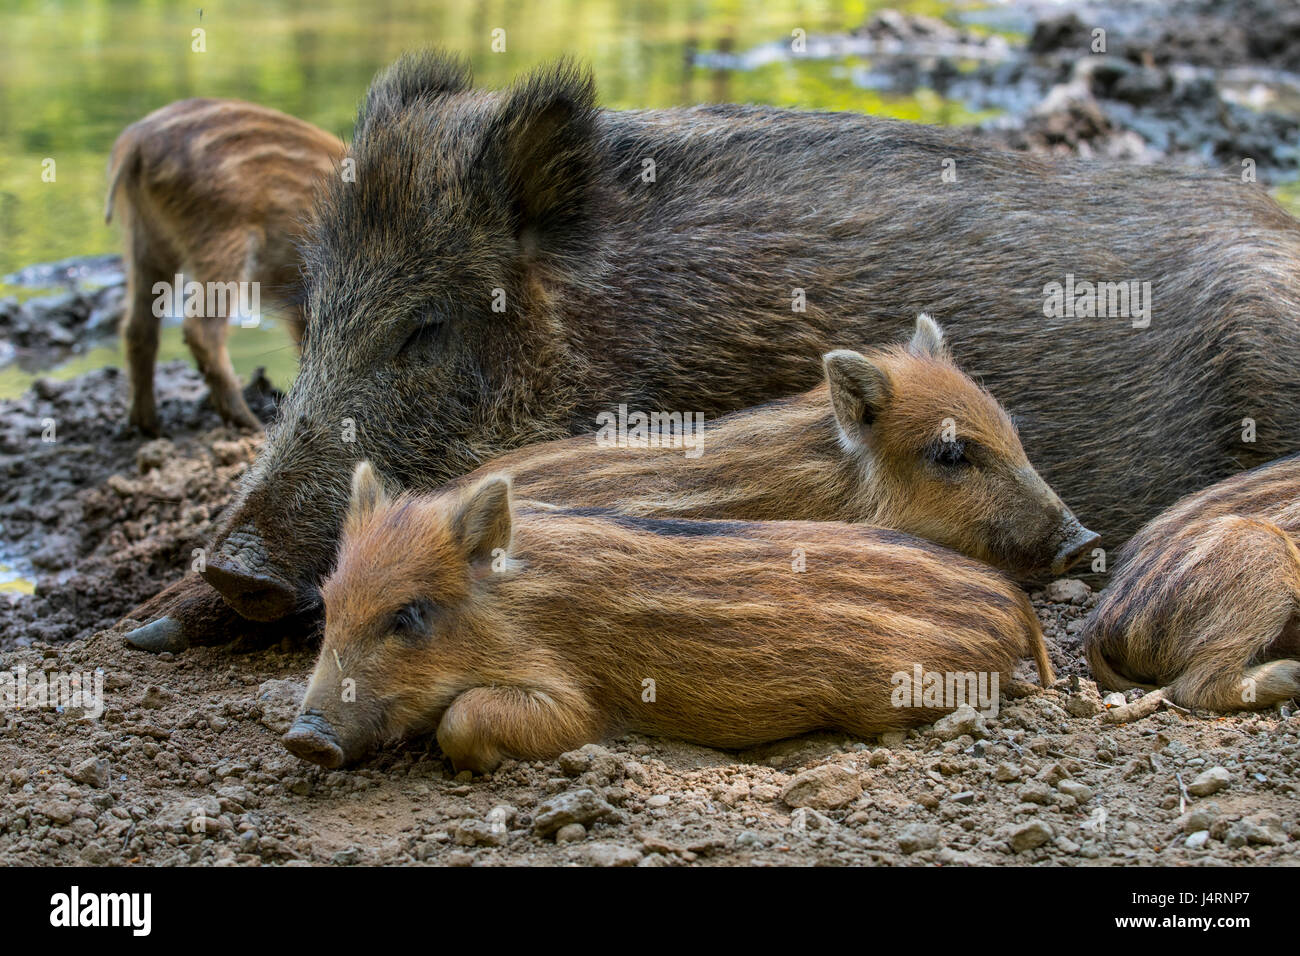 Wild boar (Sus scrofa) sow with piglets sleeping in the mud in spring - Stock Image